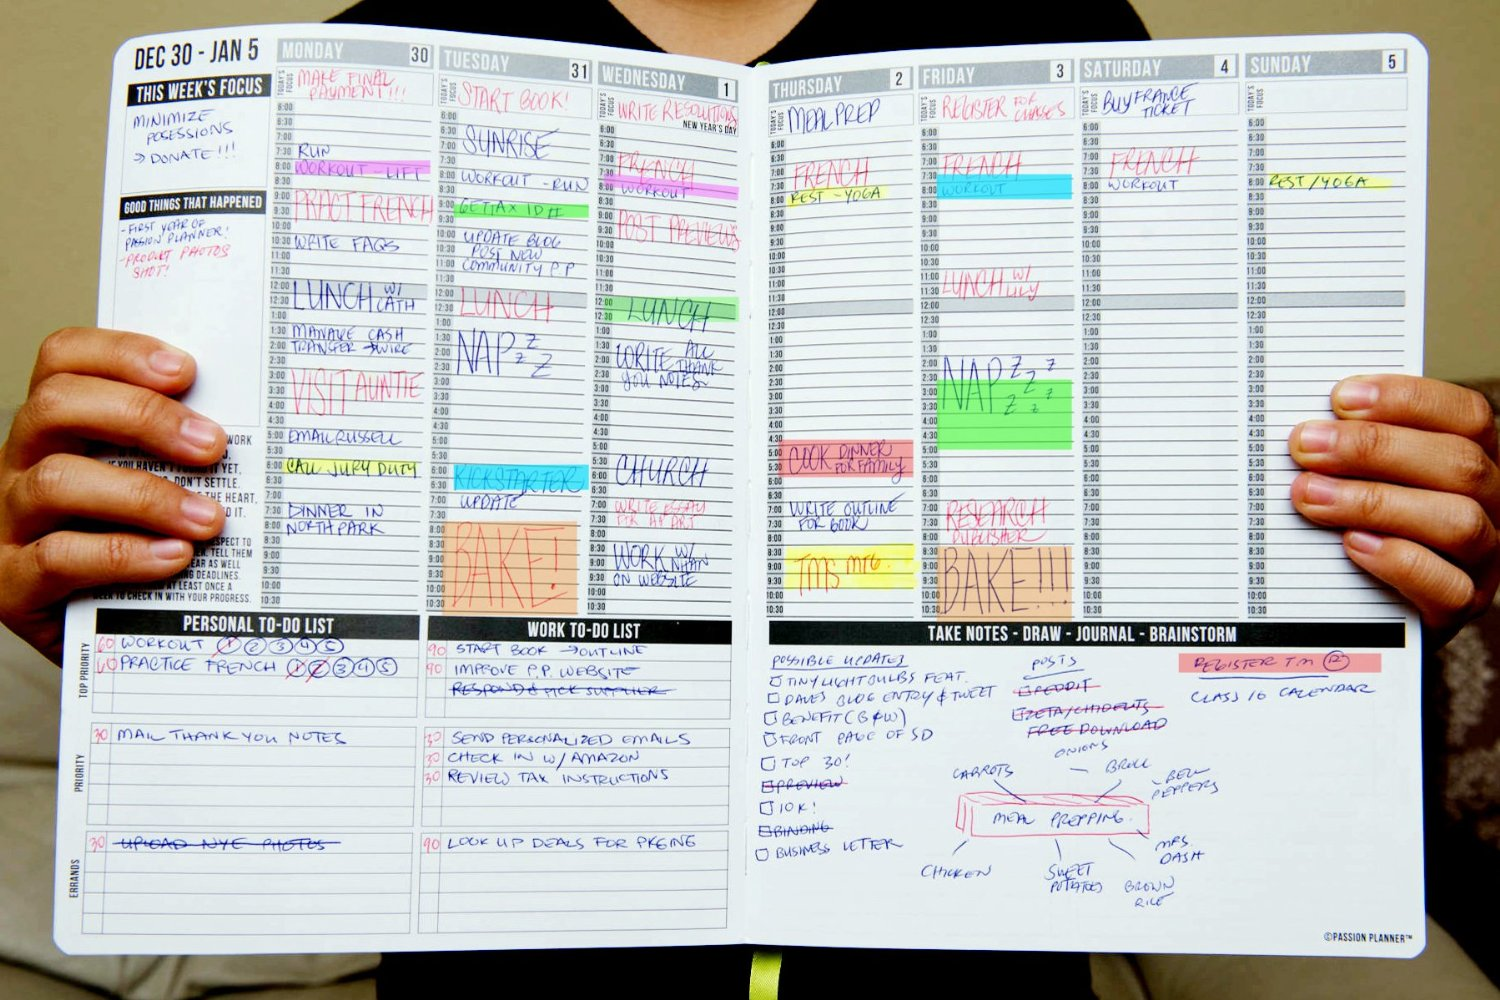 Best Calendar Organization : Passion planner wife on the run